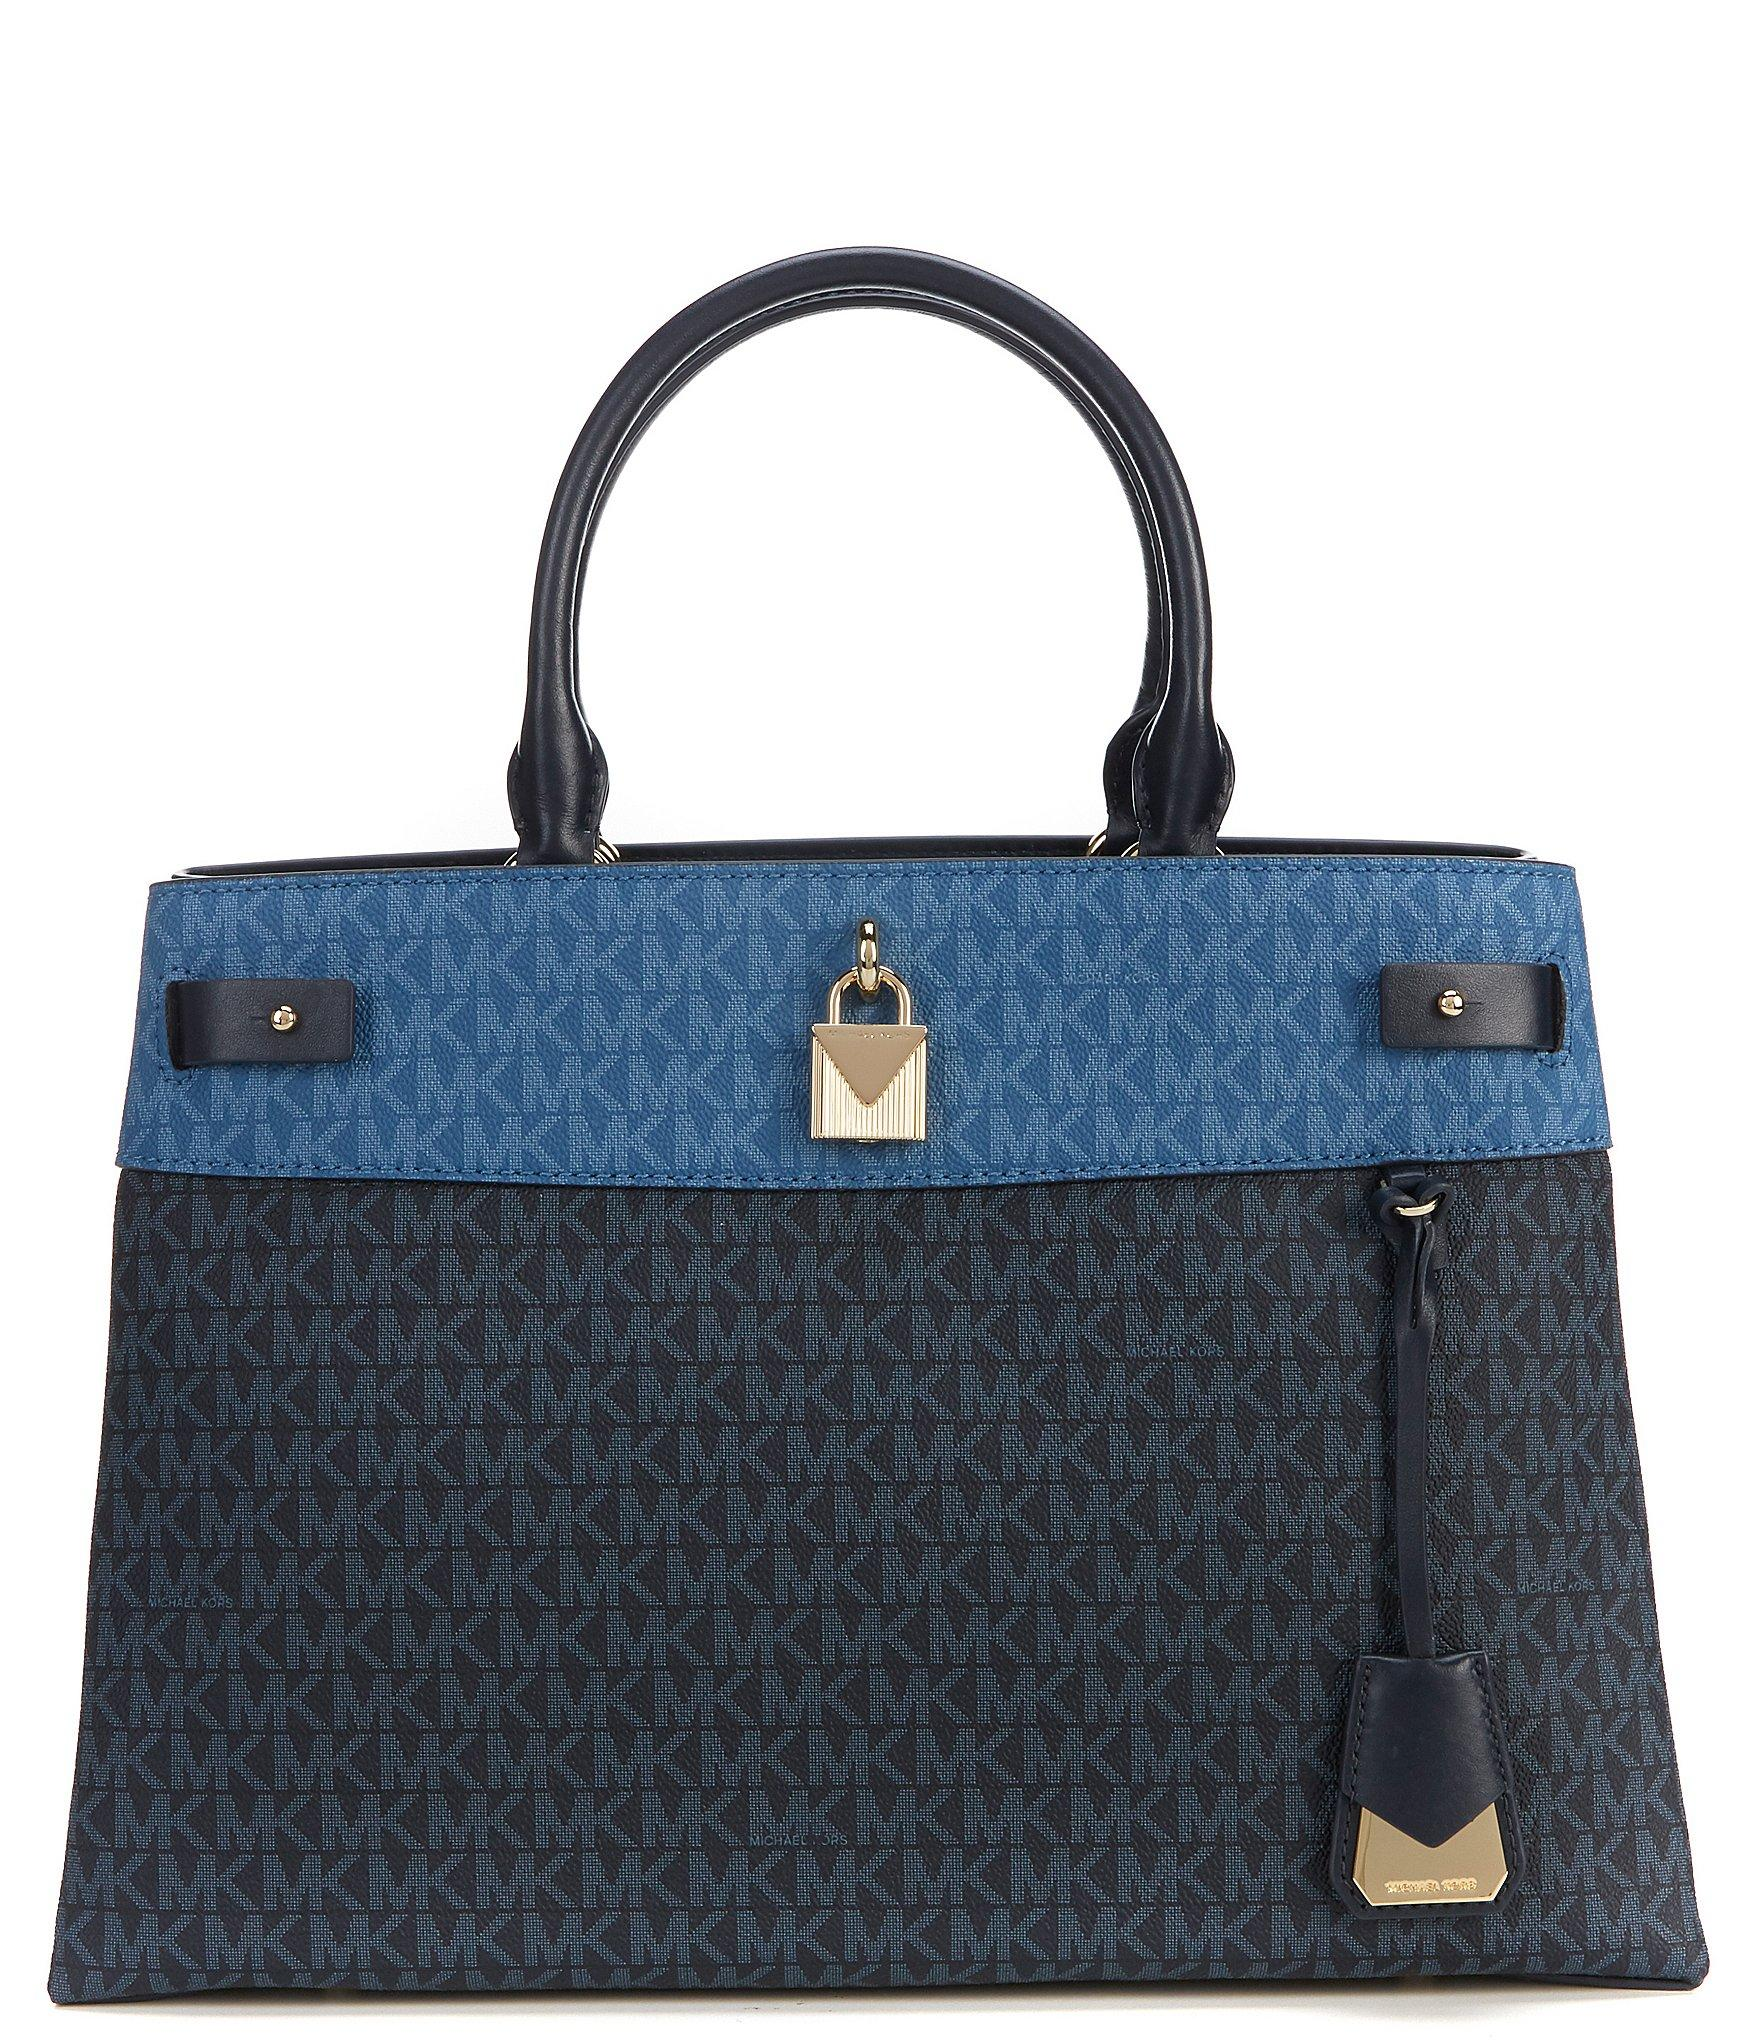 391a2917f8a6 Lyst - MICHAEL Michael Kors Gramercy Colorblock Large Satchel in Blue